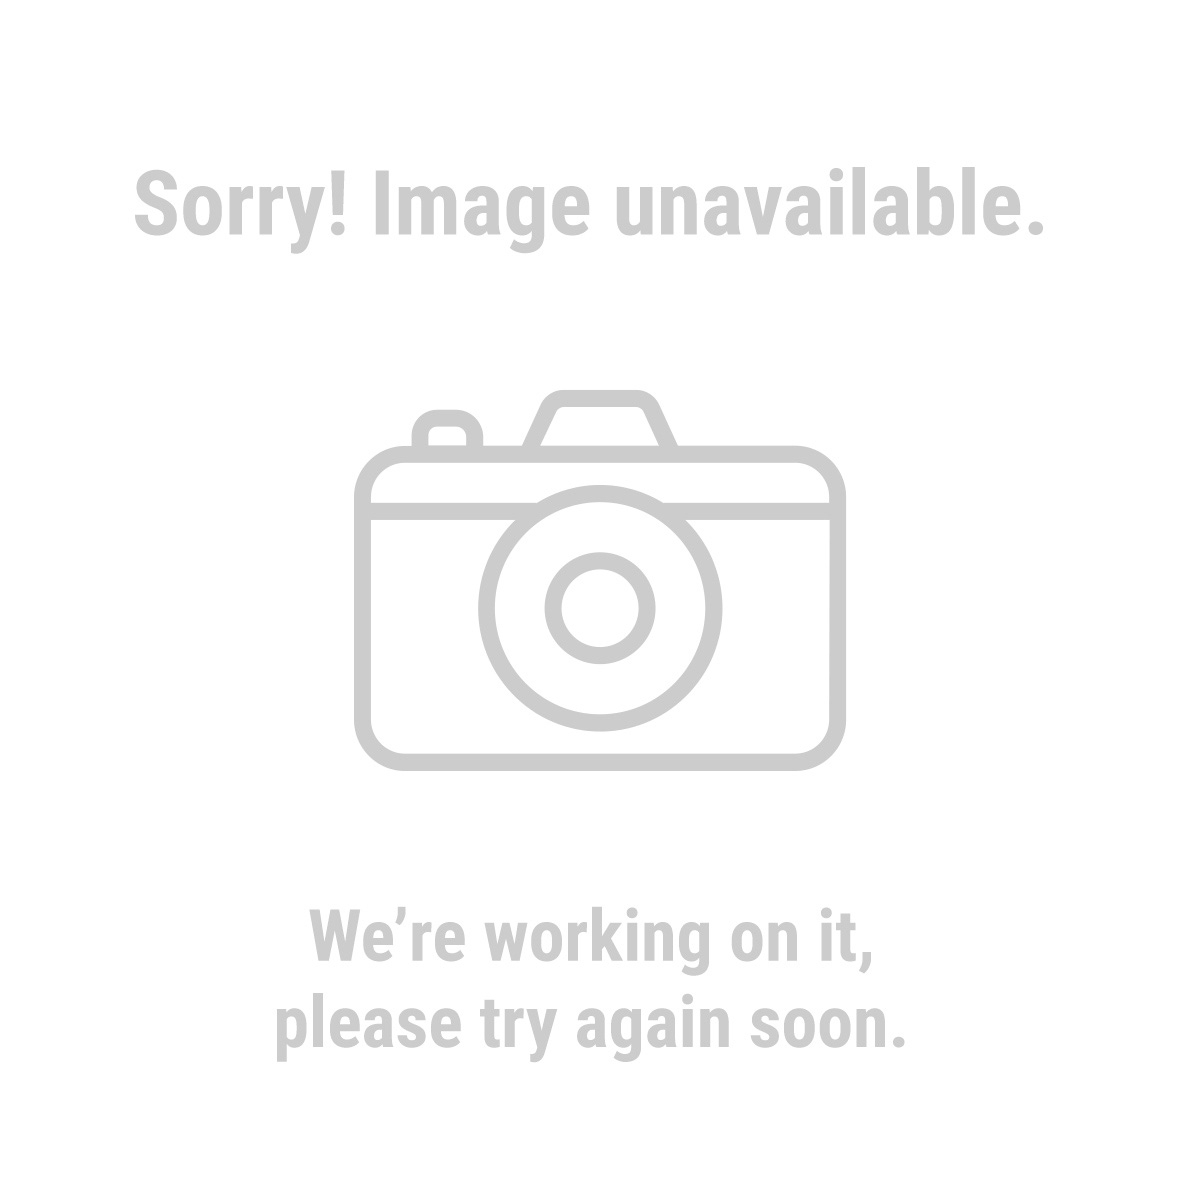 Predator Engines 69727 6.5 HP (212cc) OHV Horizontal Shaft Gas Engine